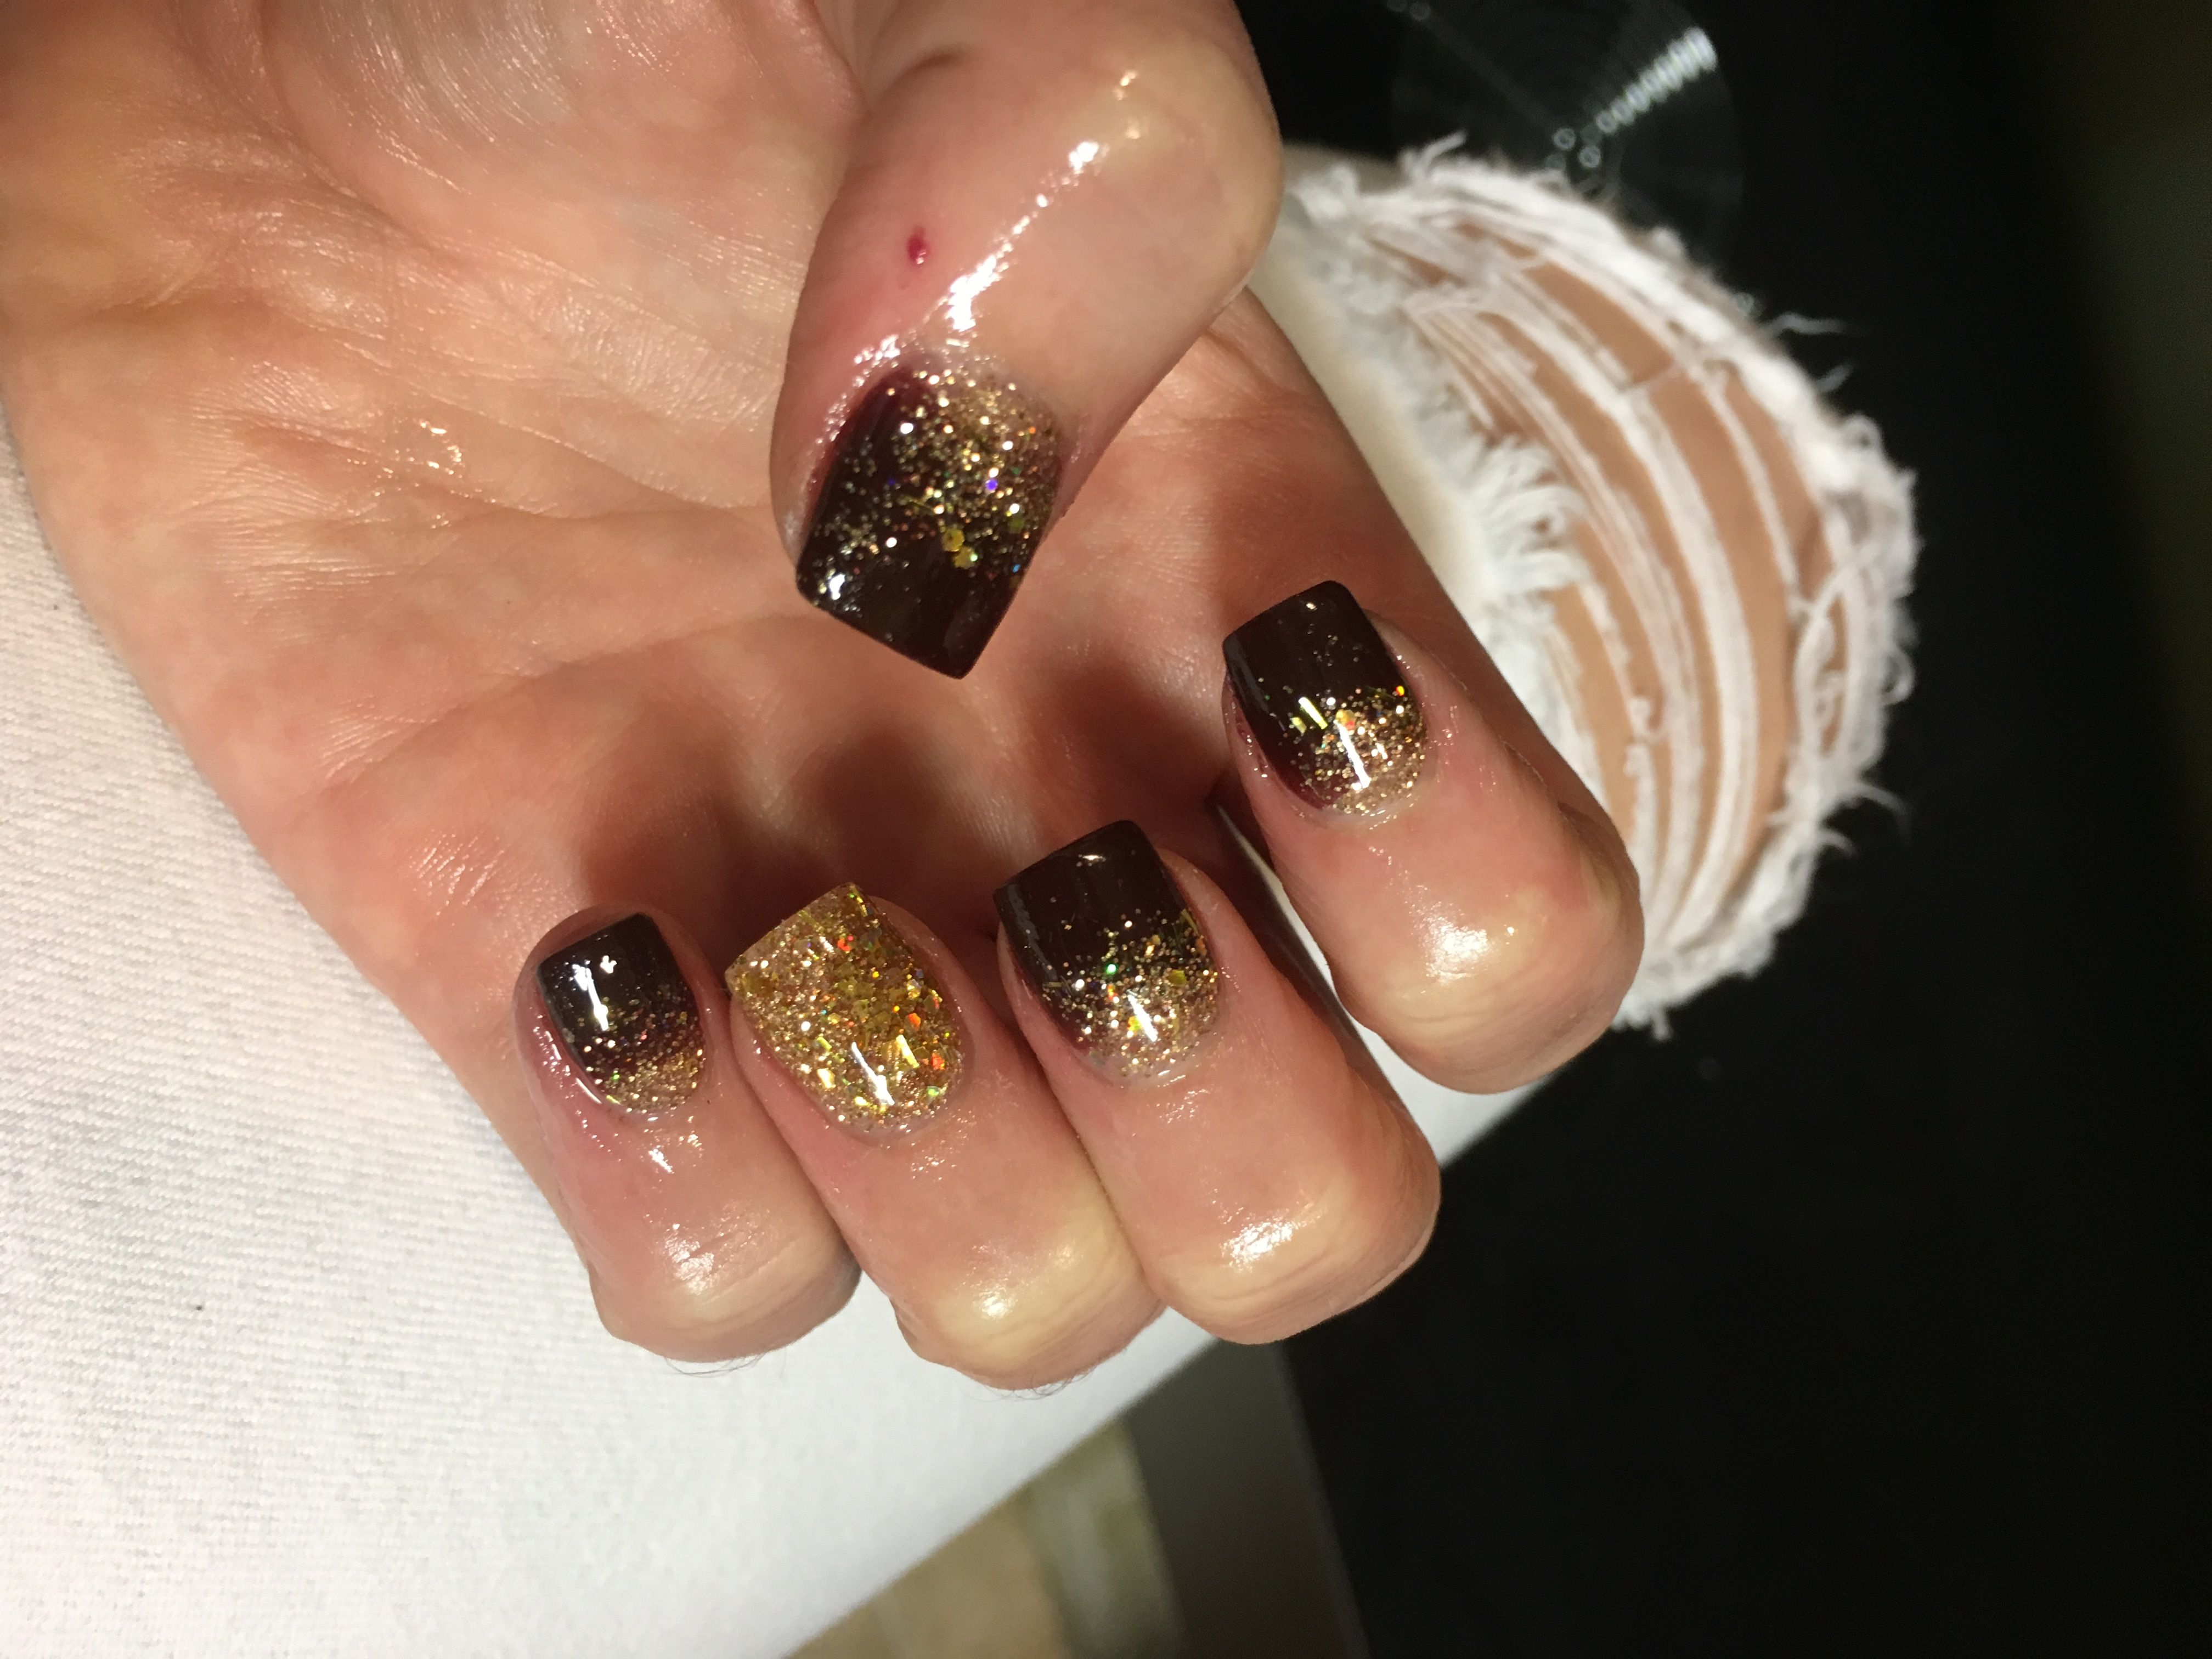 Nexgen Nail Dip Ombre Glitter For Christmas 2017 2018 Winter With